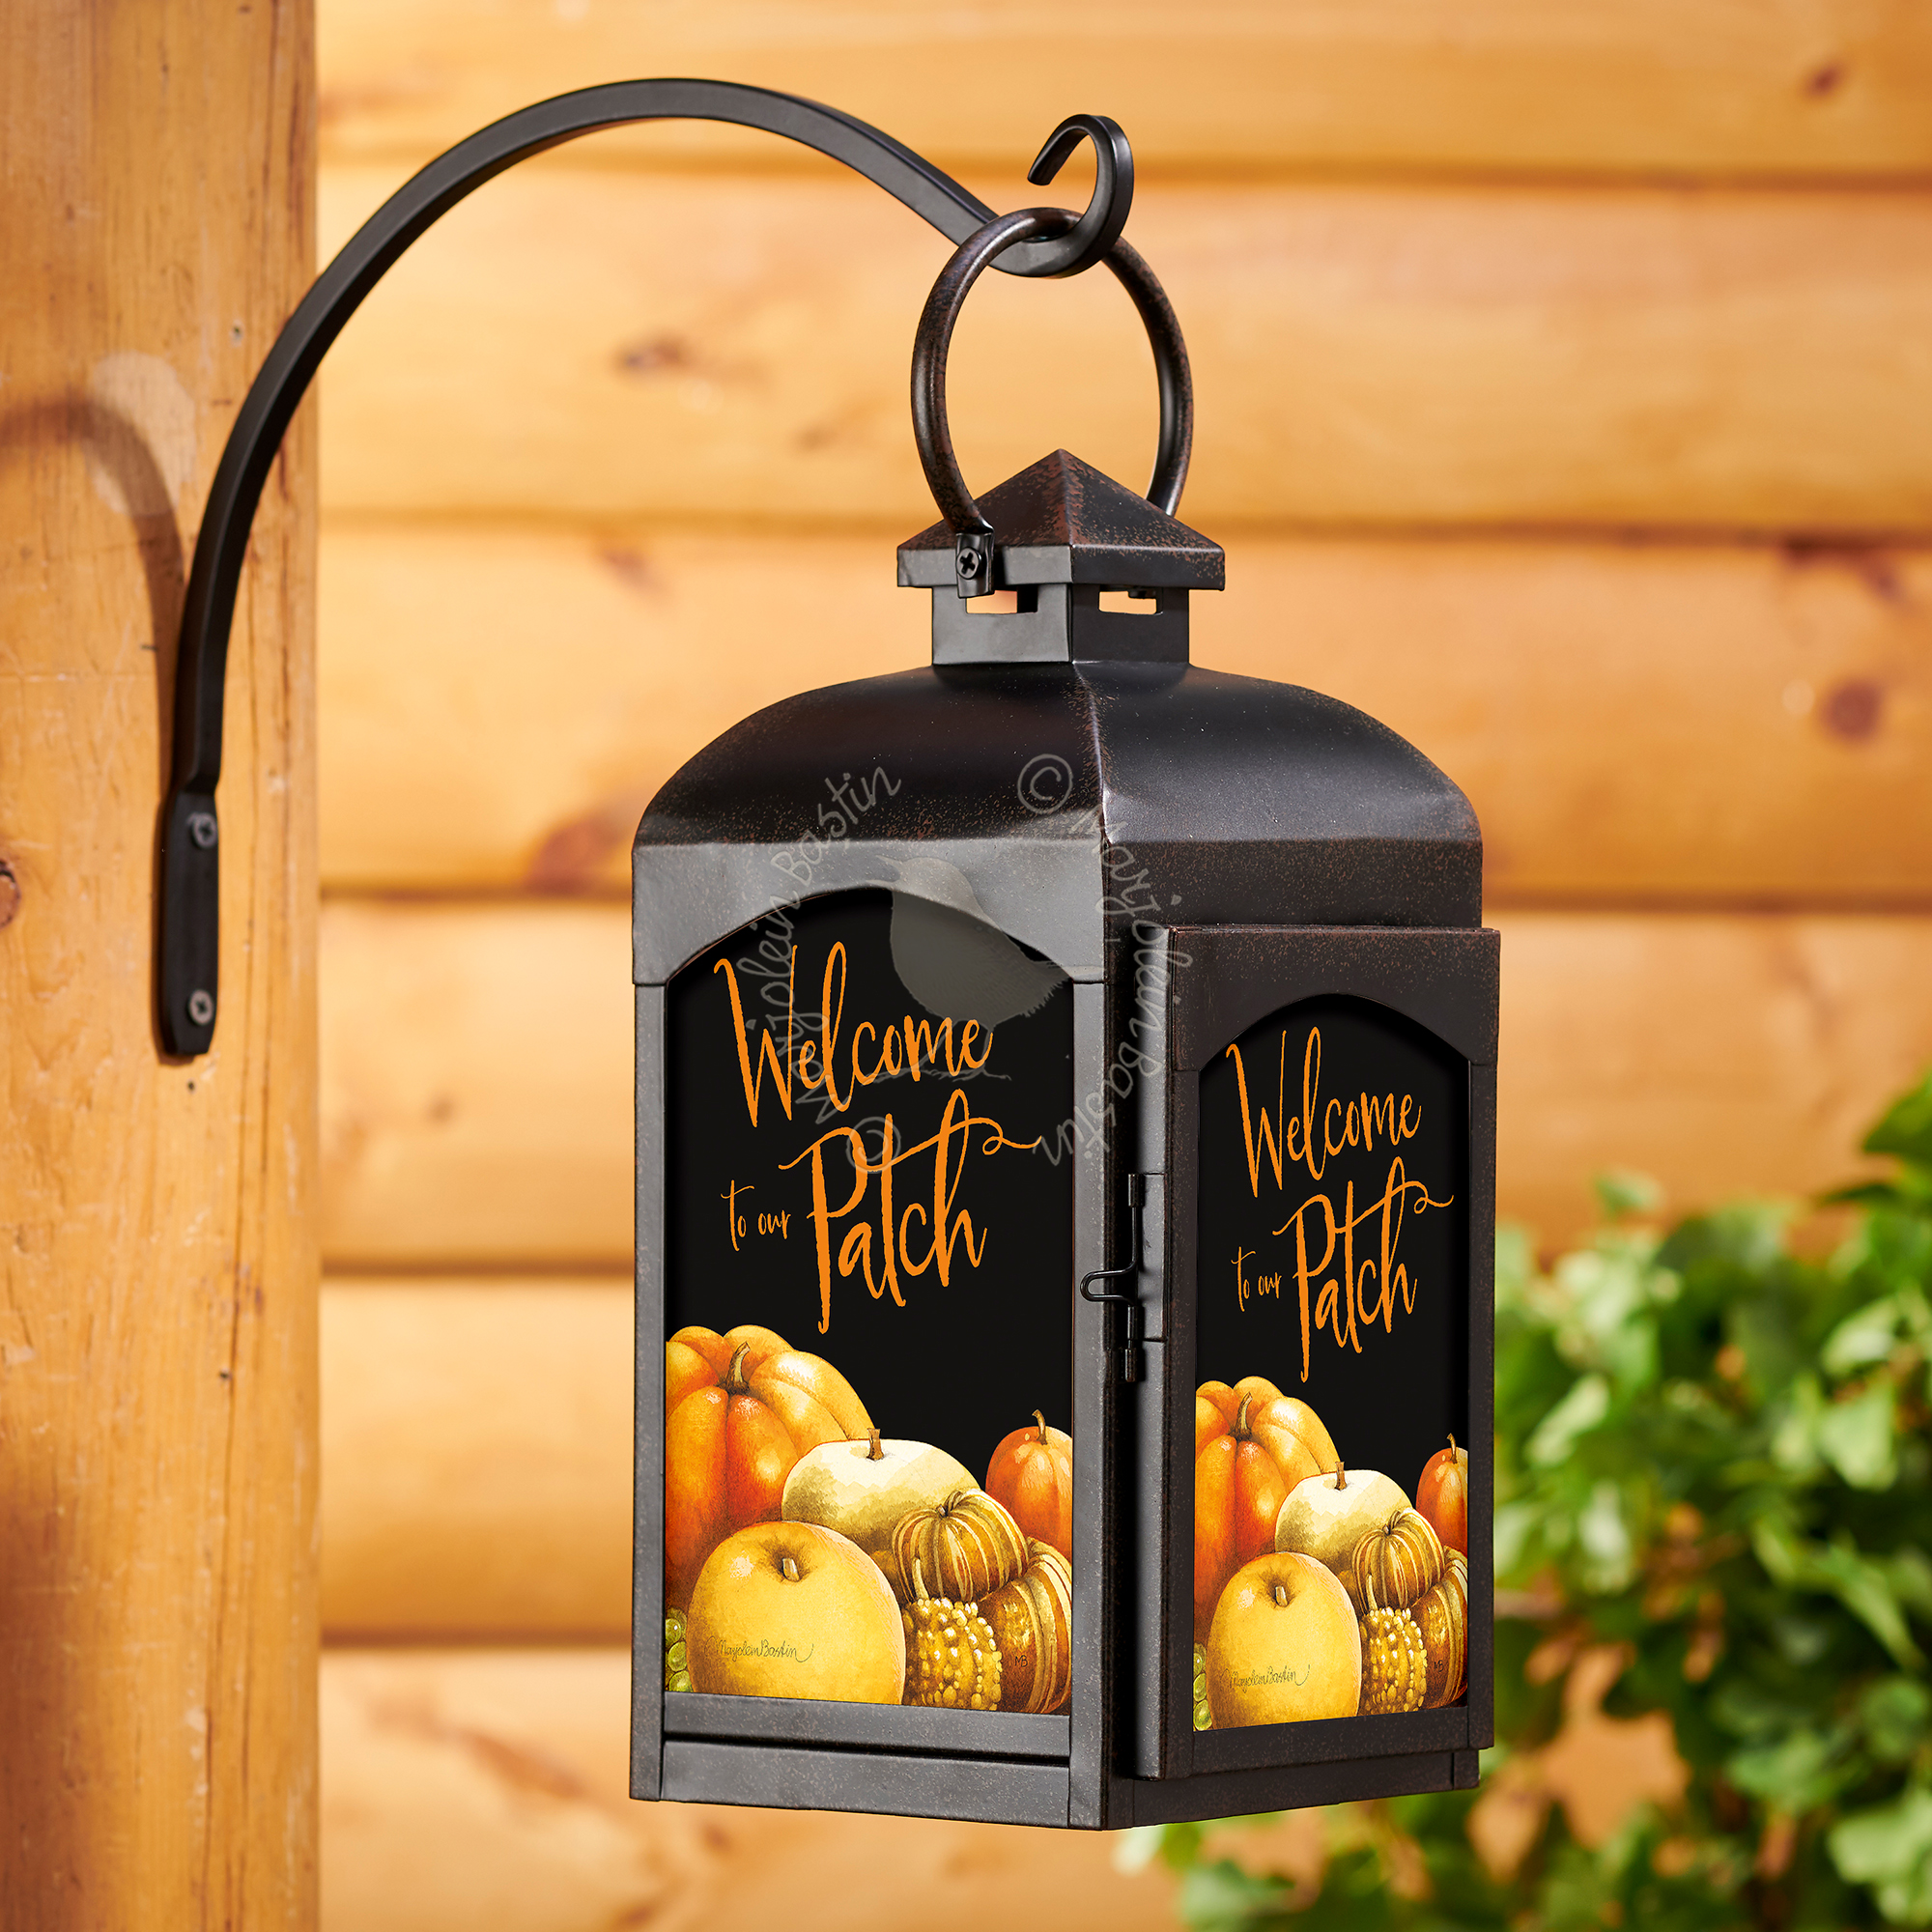 Welcome to our Patch - Rustic Black Lantern